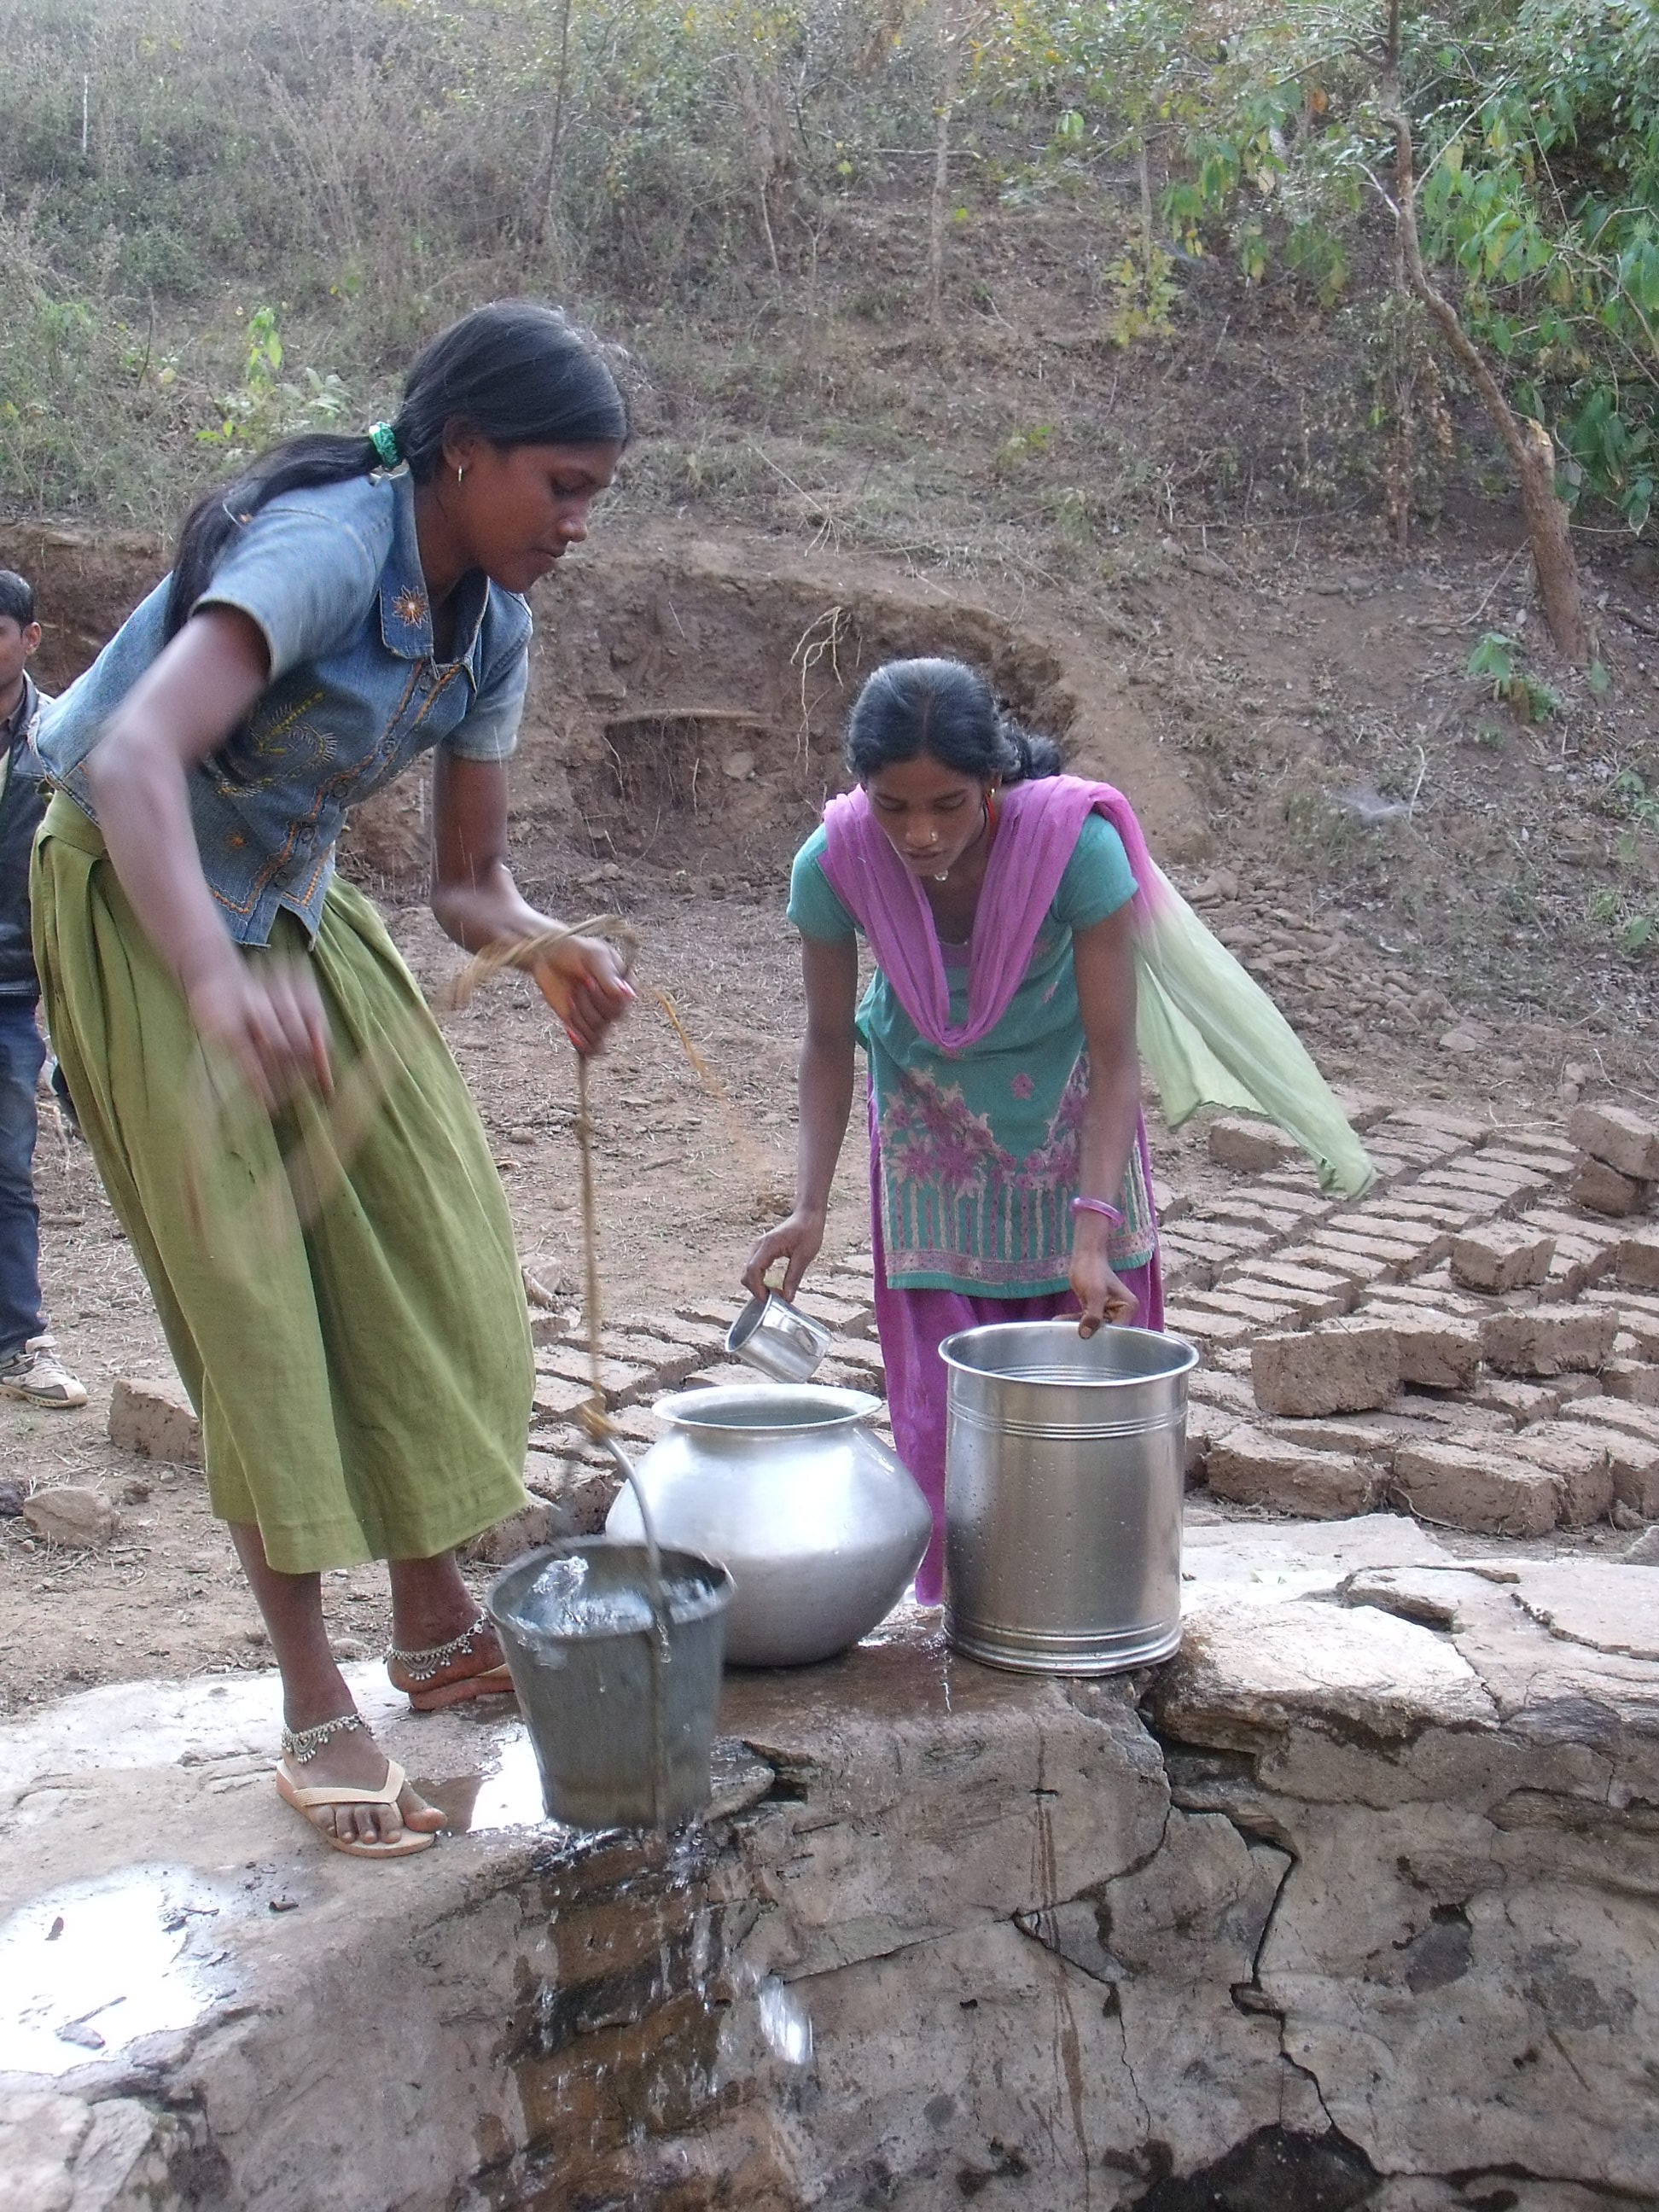 Sonia & Vimla collect water from a well